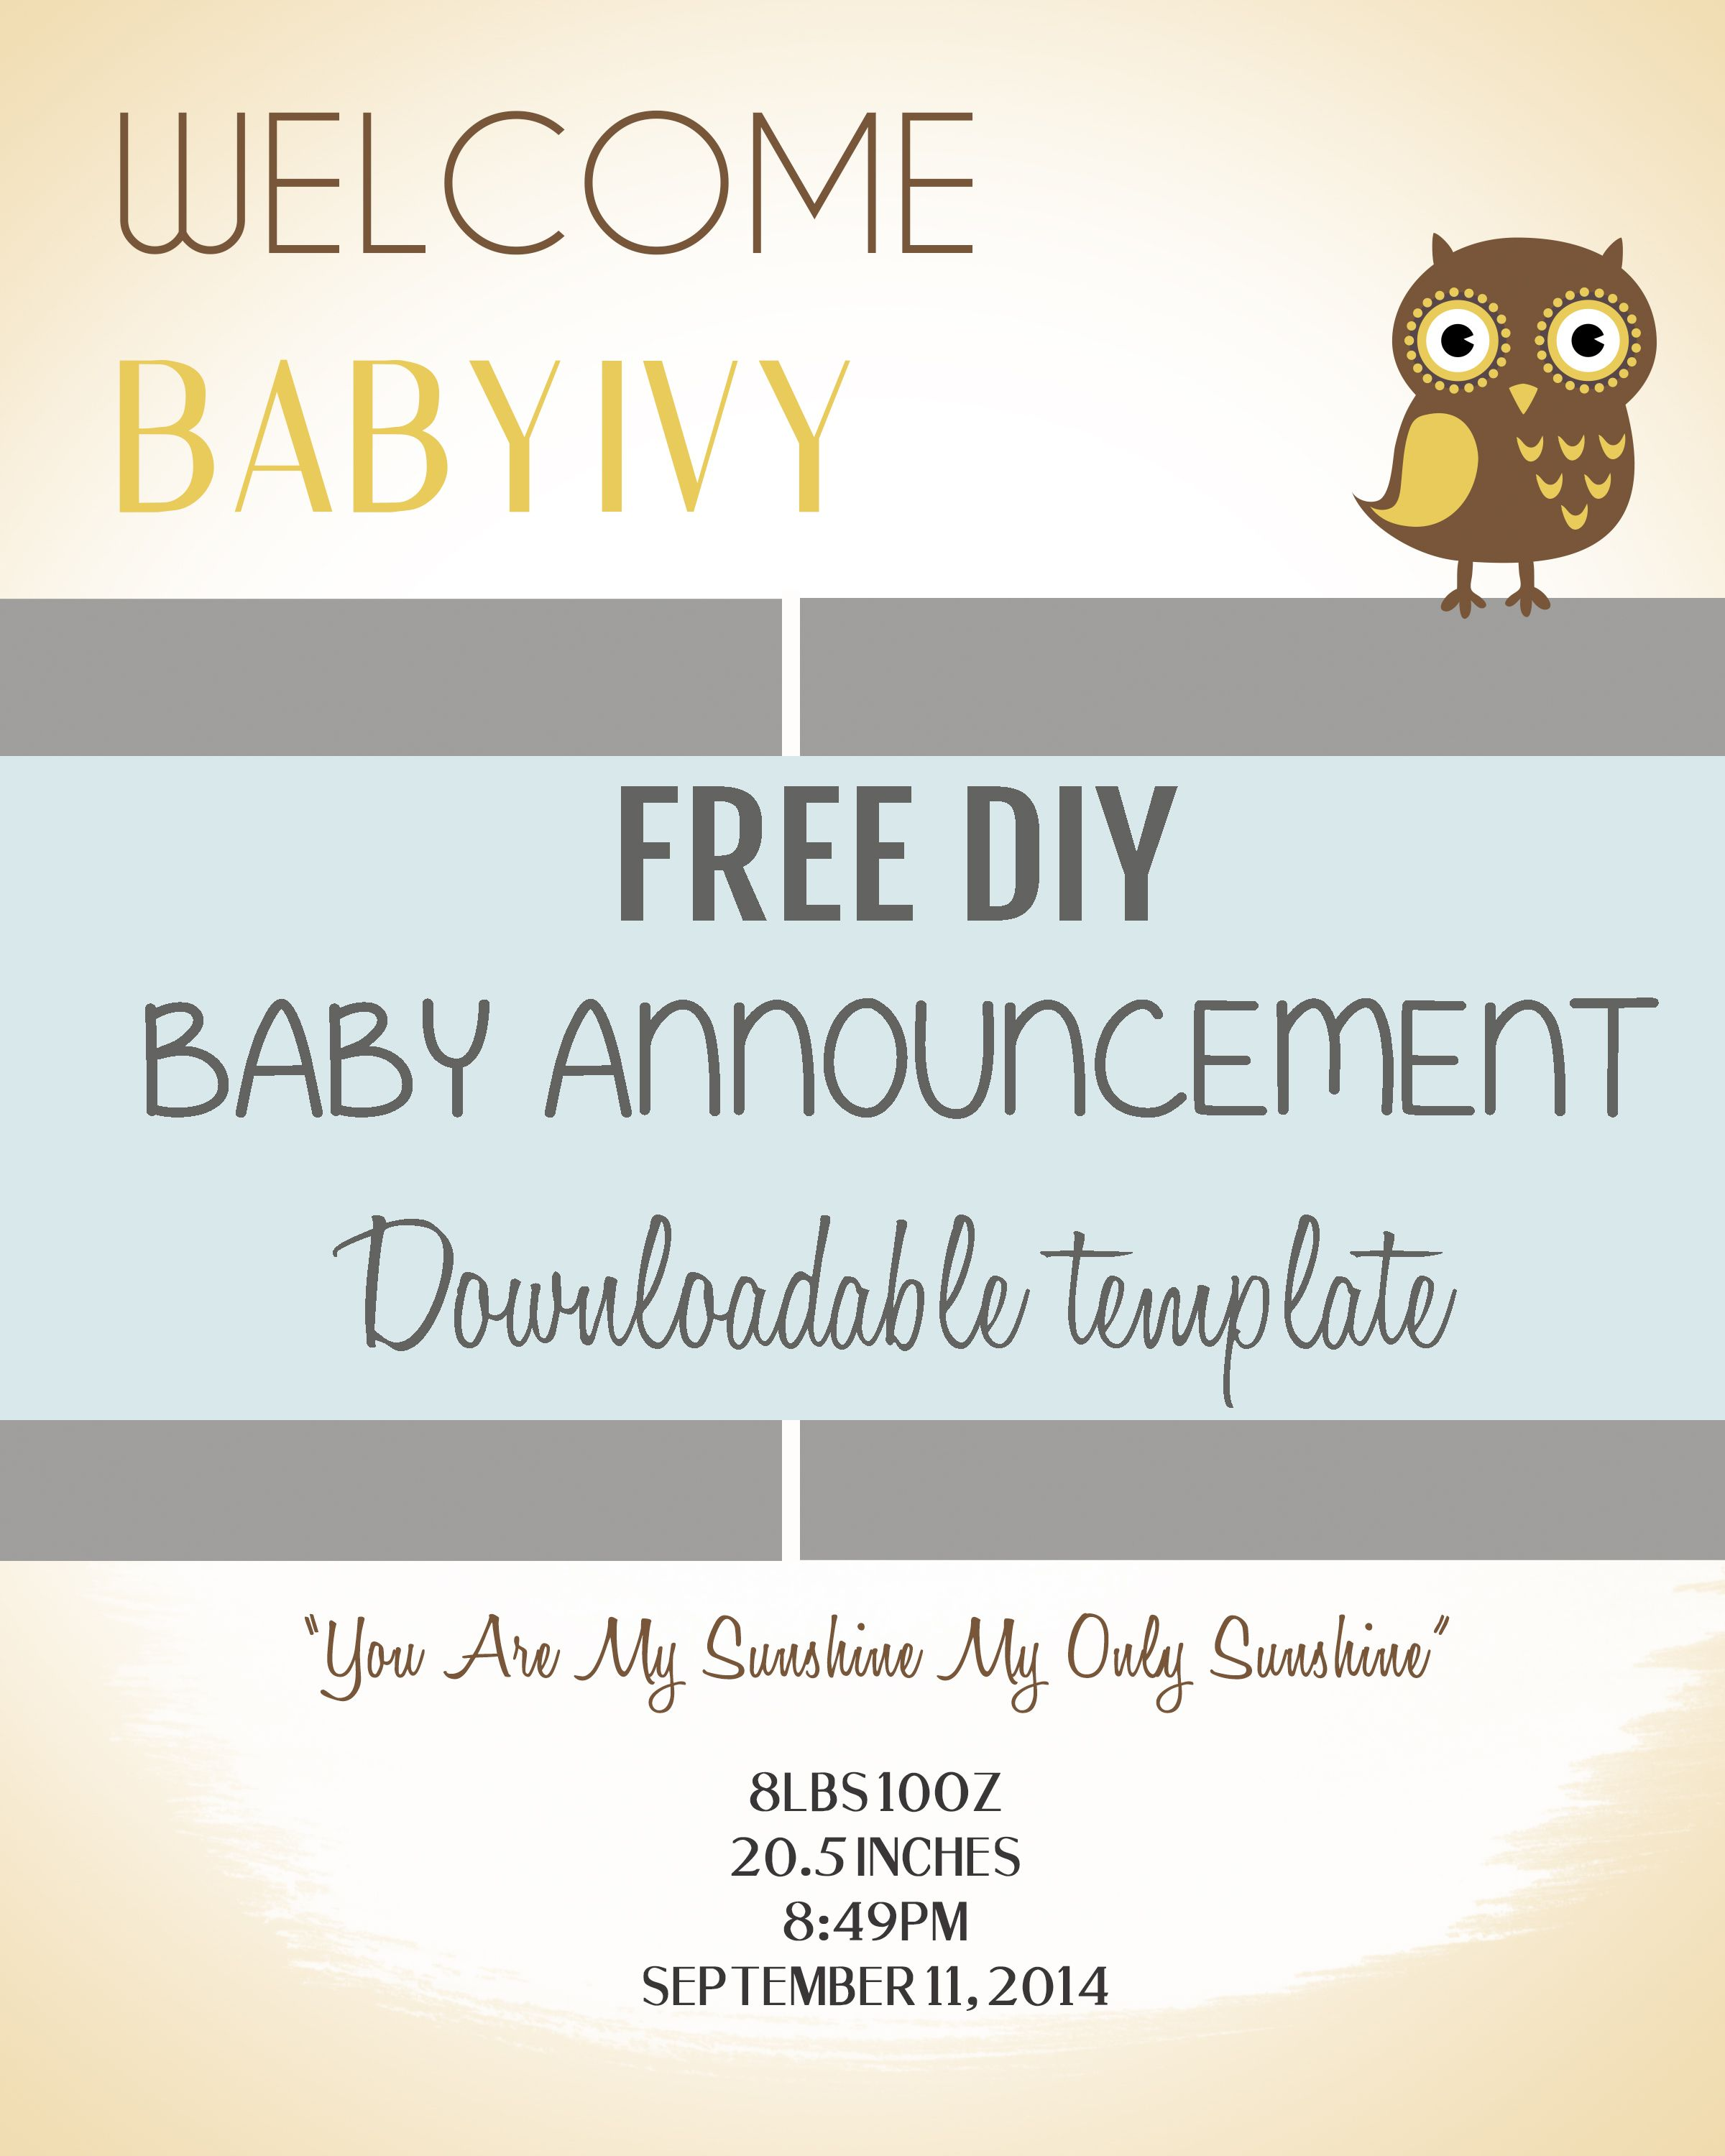 worddraw com baby announcement template for microsoft word diy baby announcement template